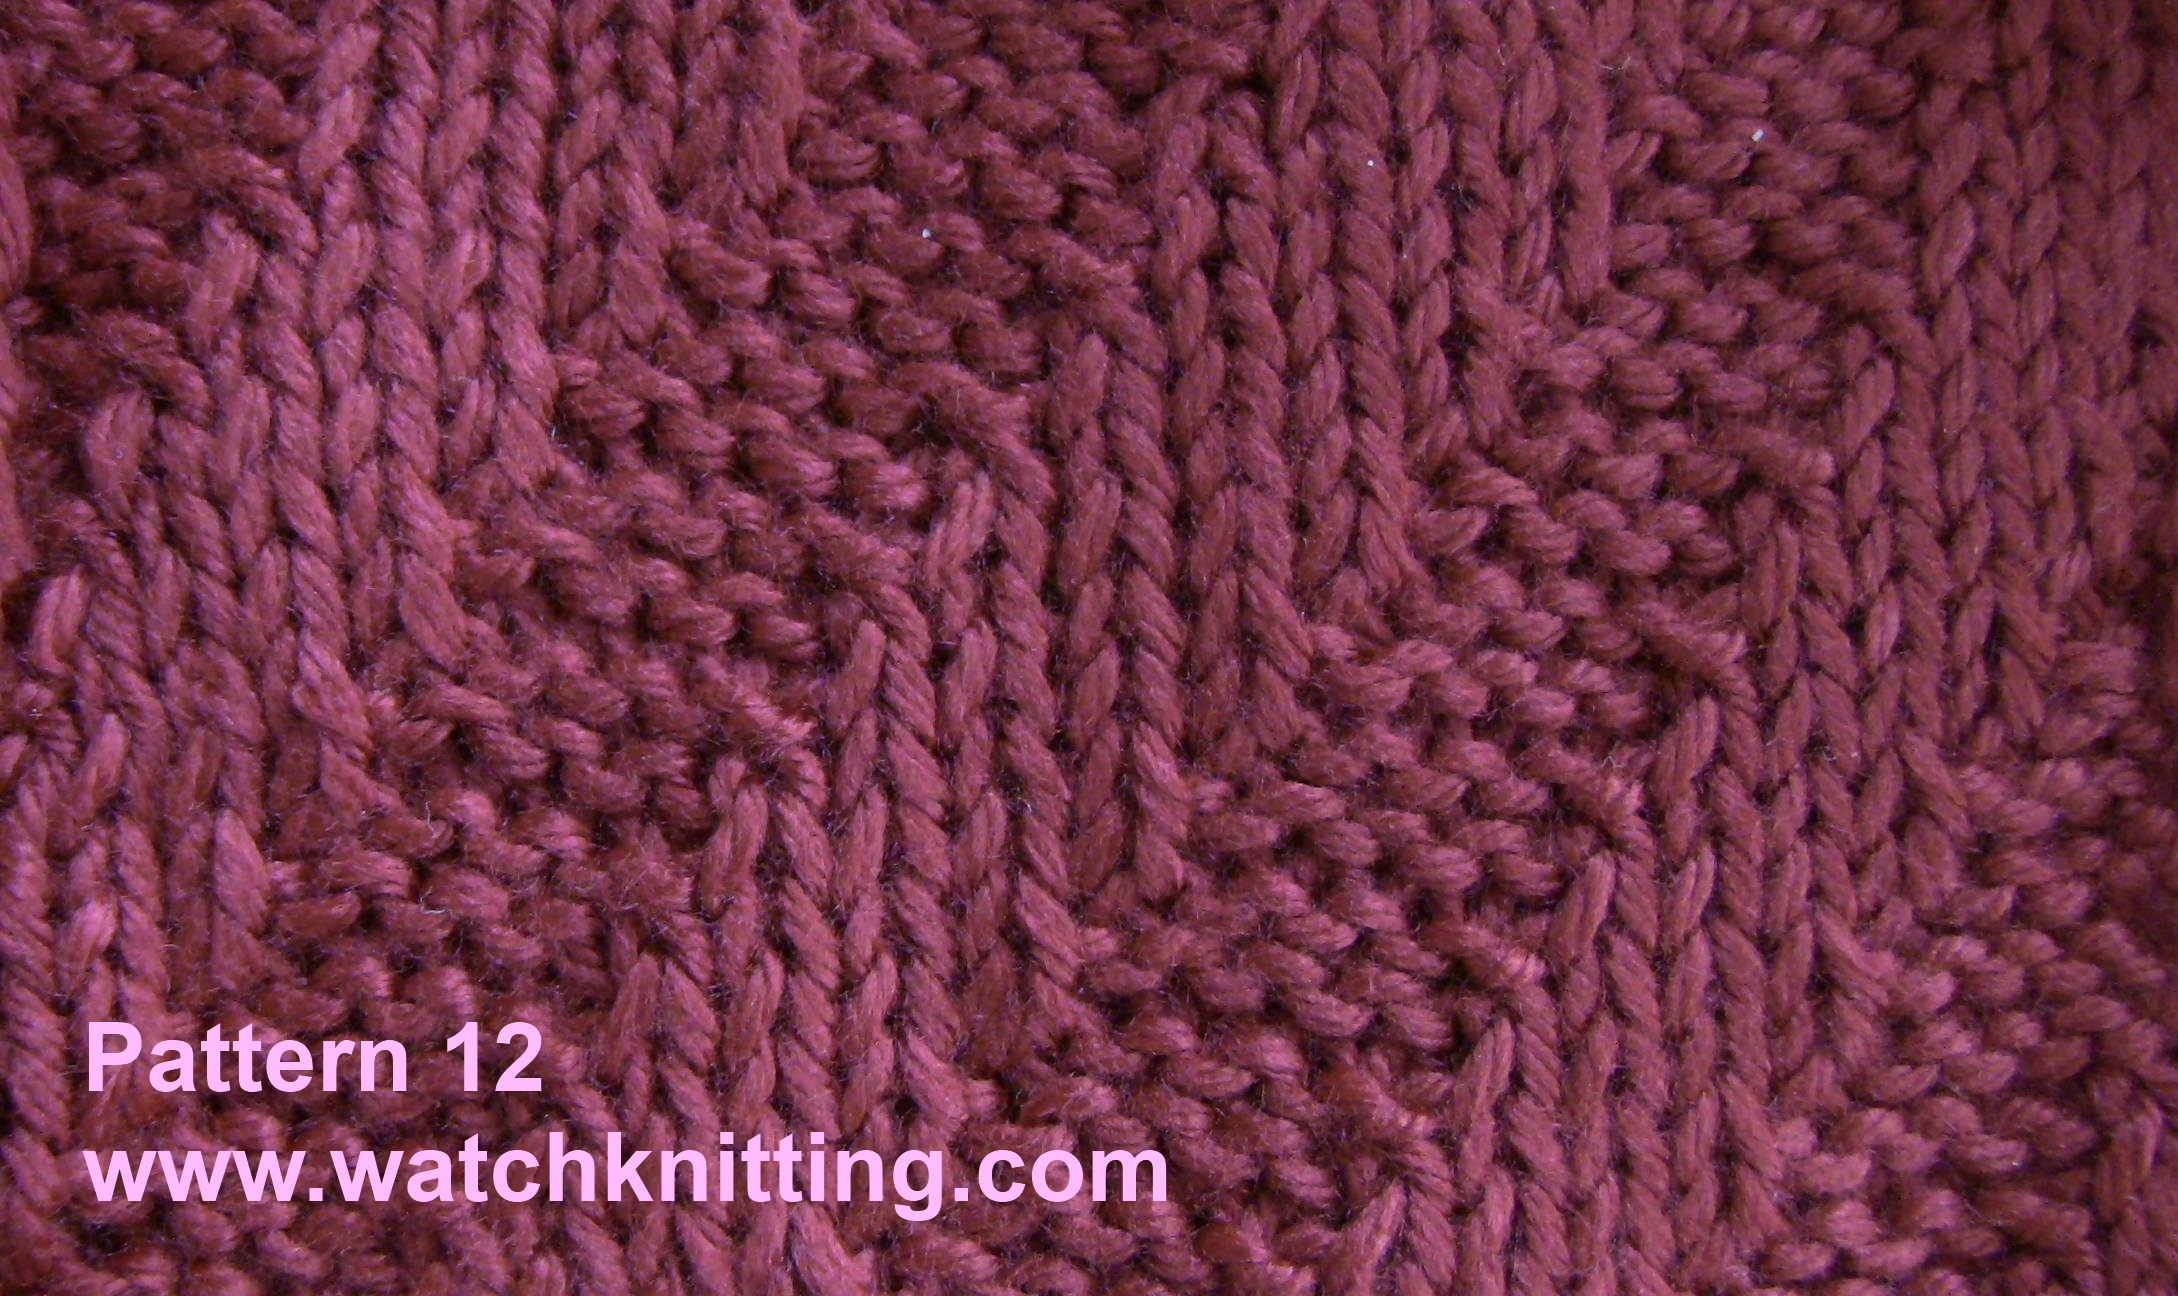 Easy Knitting : Knitting Stitches Basic knitting stitches